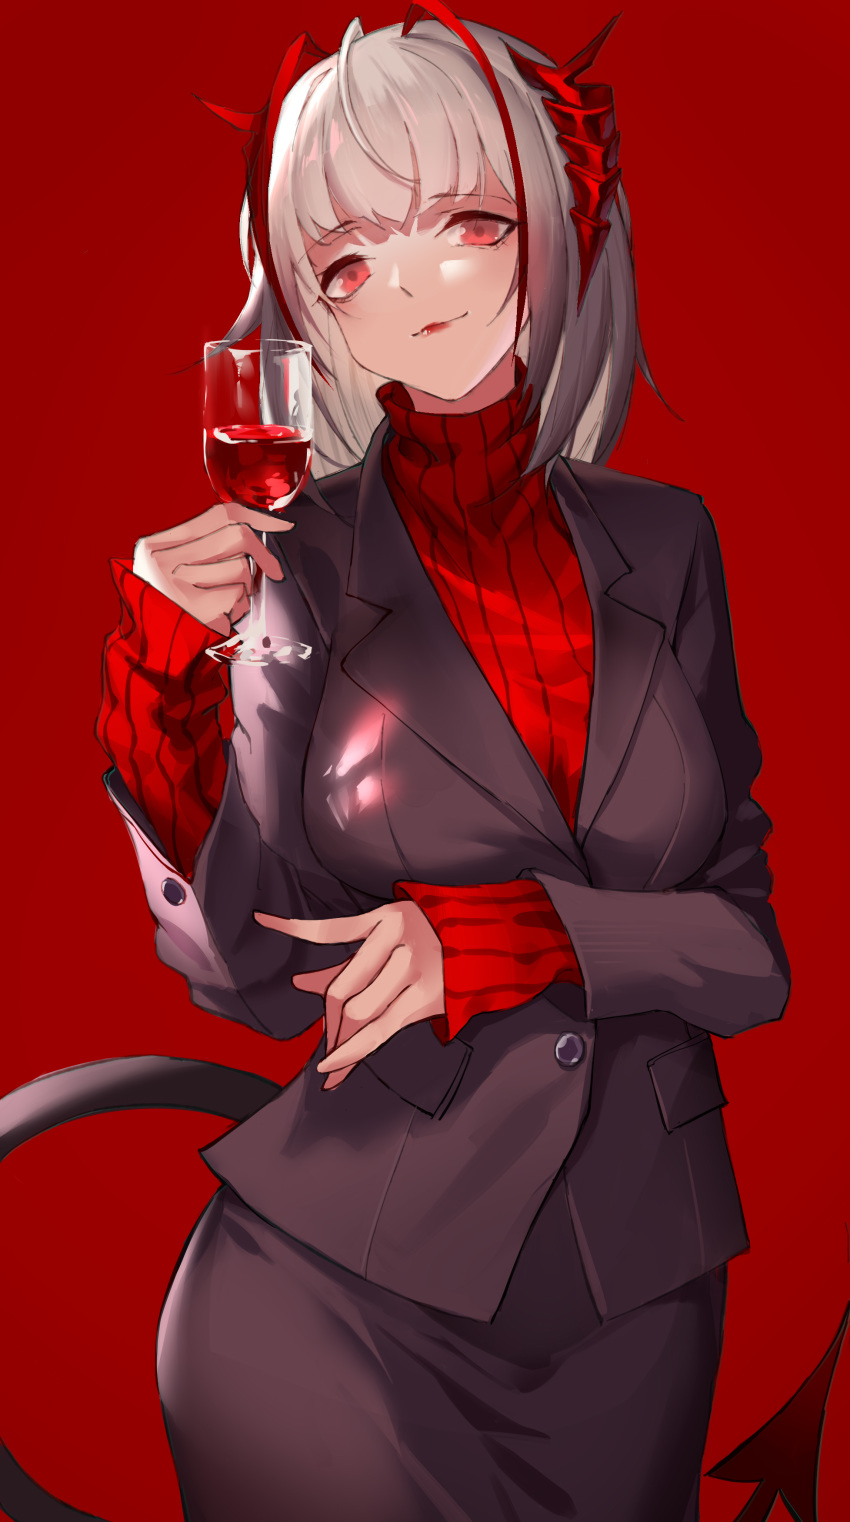 1girl absurdres ahoge alcohol alternate_costume arknights bangs bankongping black_jacket black_skirt blazer breasts cowboy_shot cup drinking_glass hand_up head_tilt highres holding holding_cup horns jacket lipstick long_sleeves looking_at_viewer makeup medium_breasts red_background red_eyes red_lipstick red_sweater short_hair silver_hair simple_background skirt smile solo sweater tail turtleneck turtleneck_sweater w_(arknights) wine wine_glass